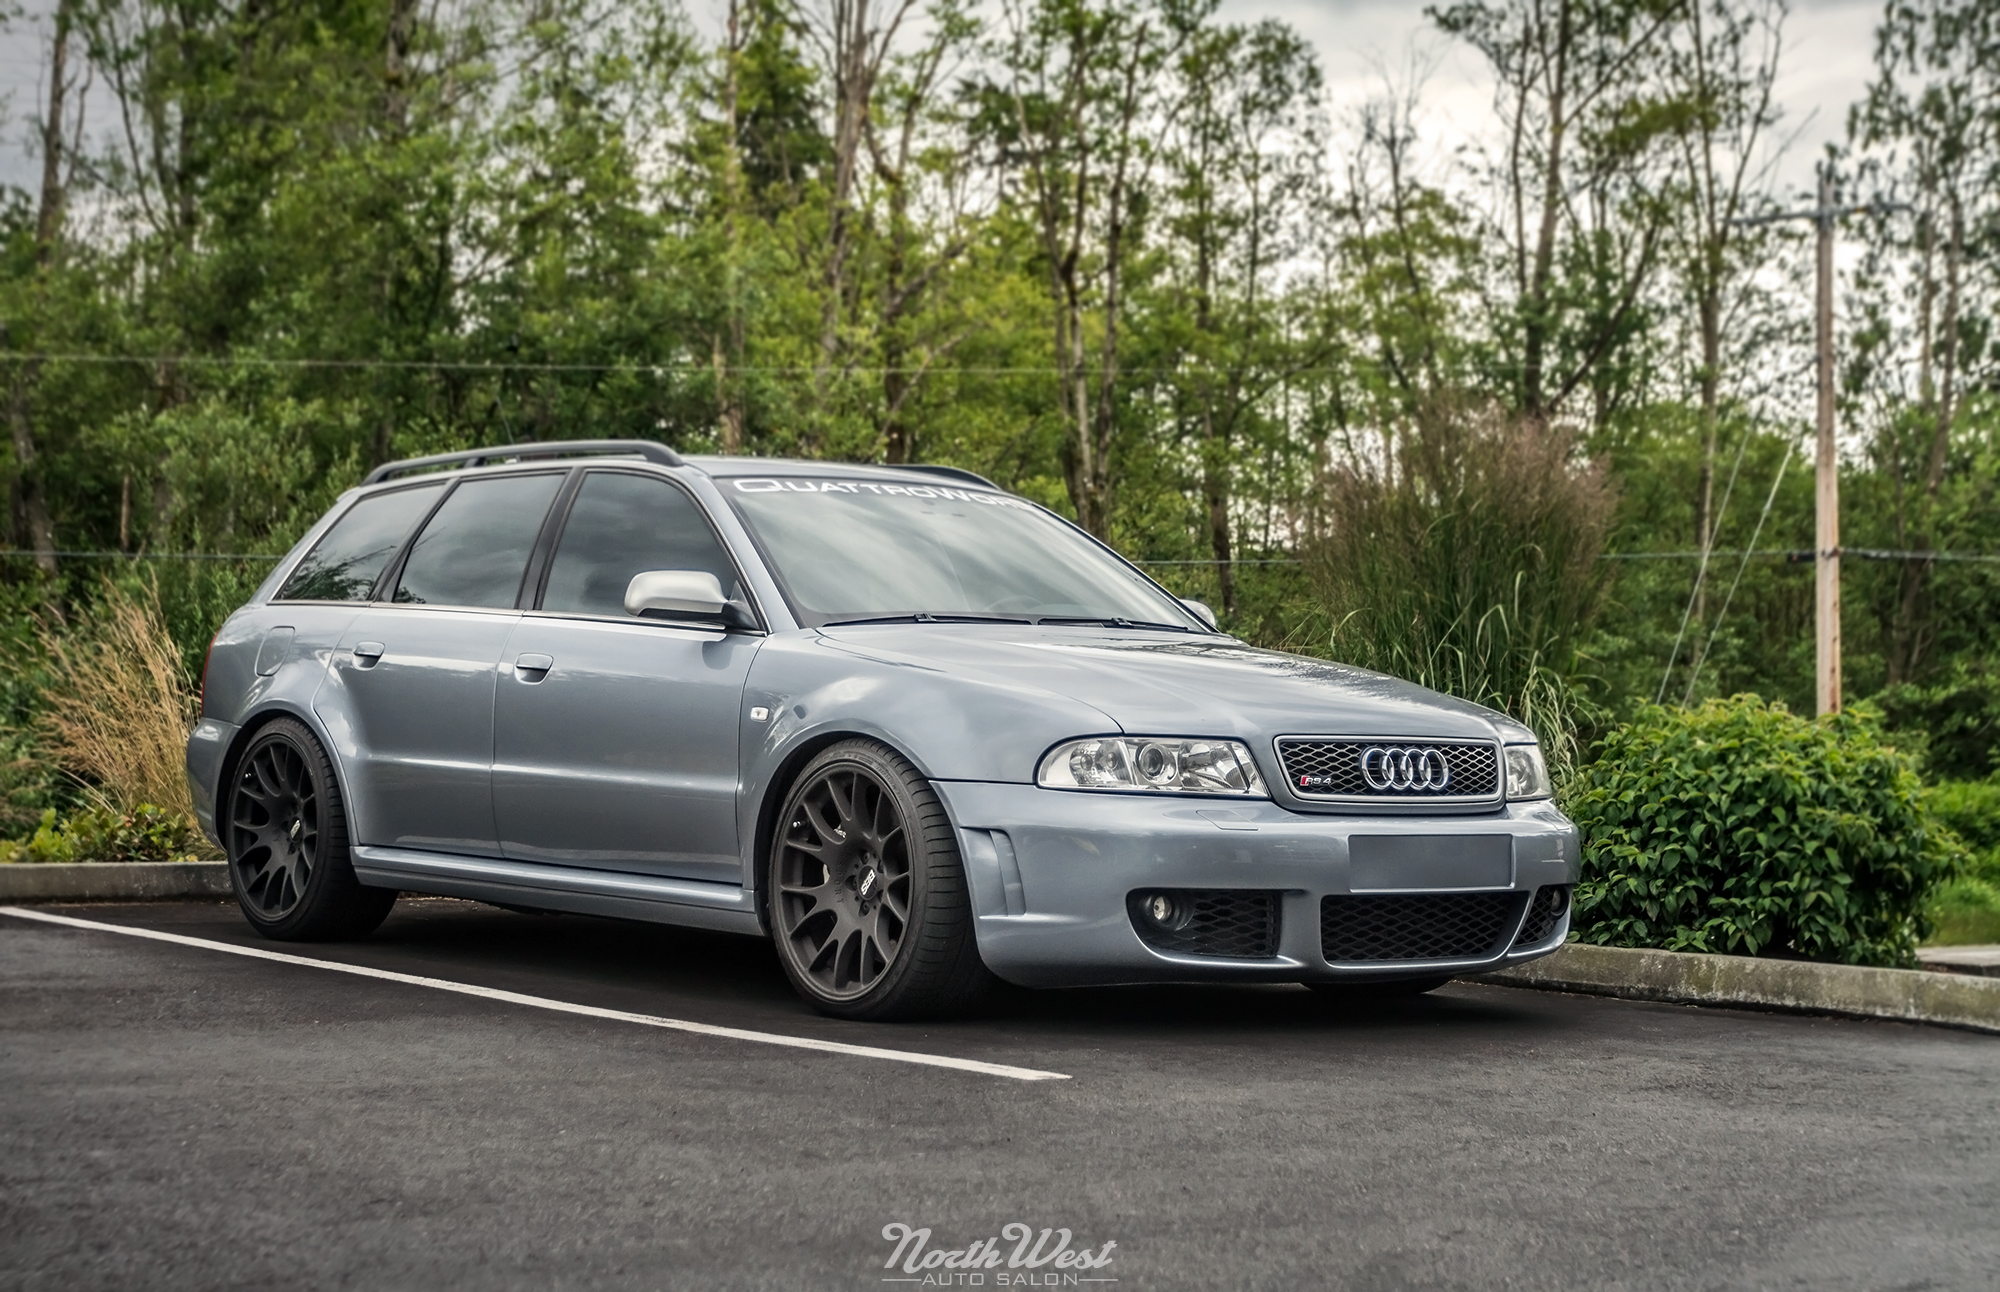 audi b5 rs4 done right check comments for more pictures. Black Bedroom Furniture Sets. Home Design Ideas